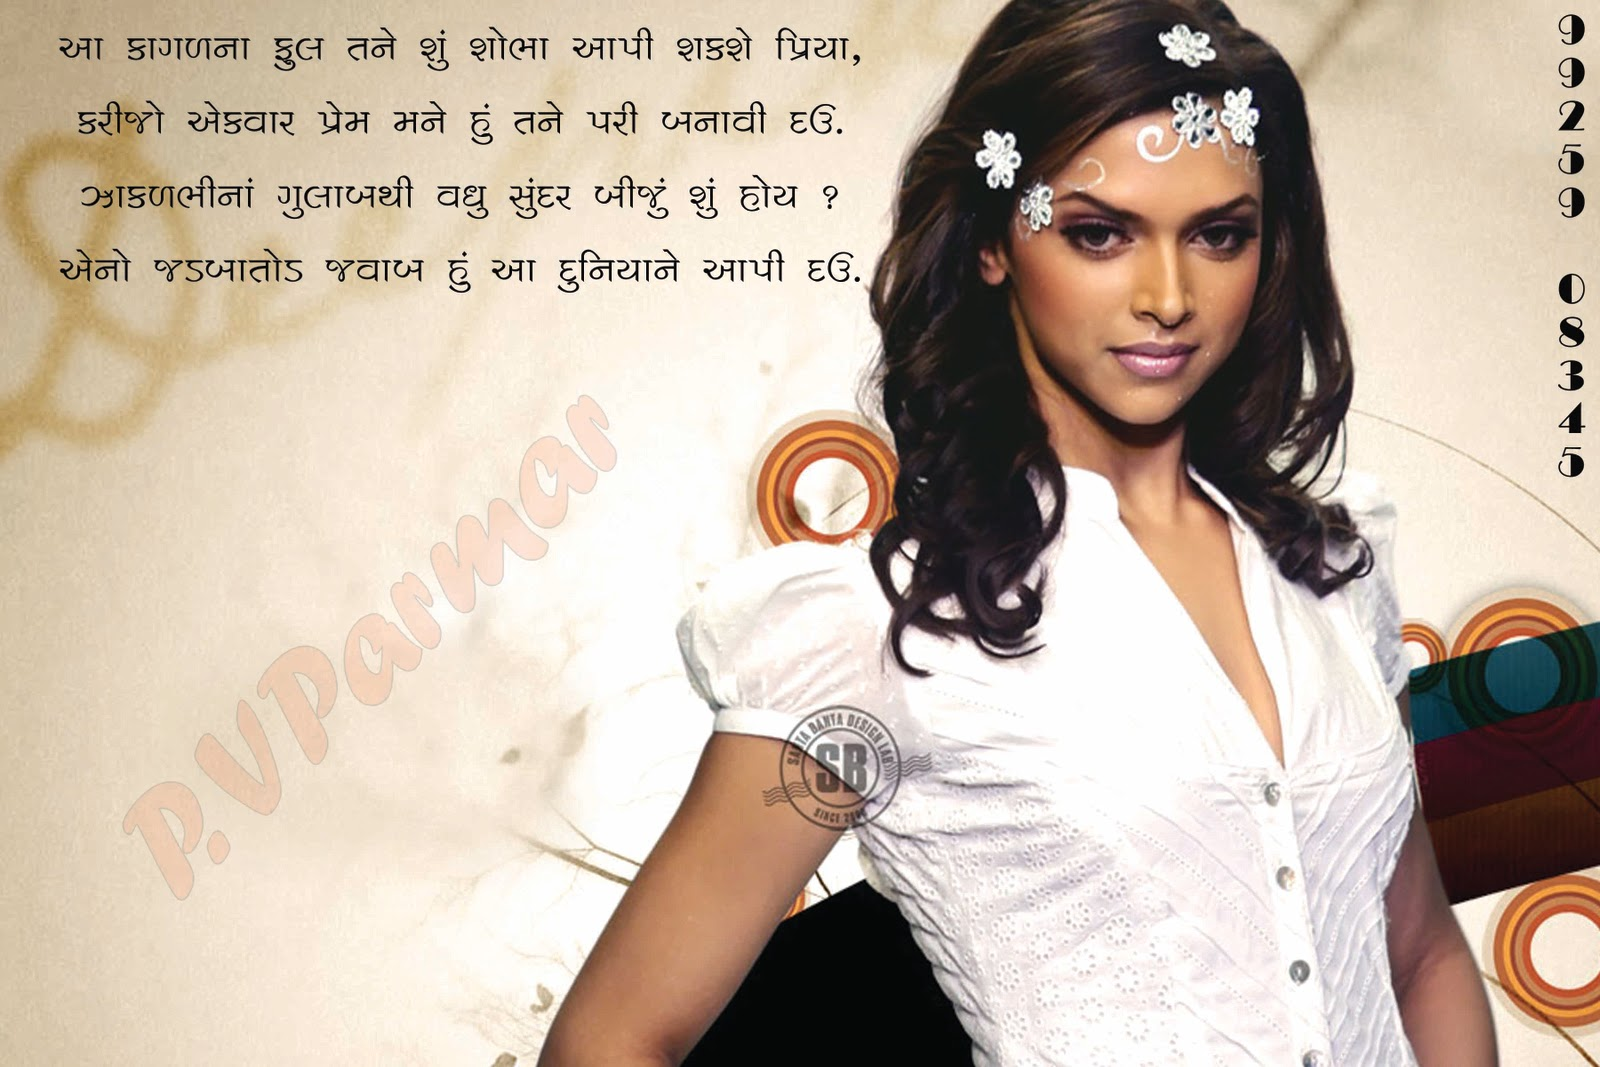 Bewafa Shayari Gujarati Posted by gujarati shayari at